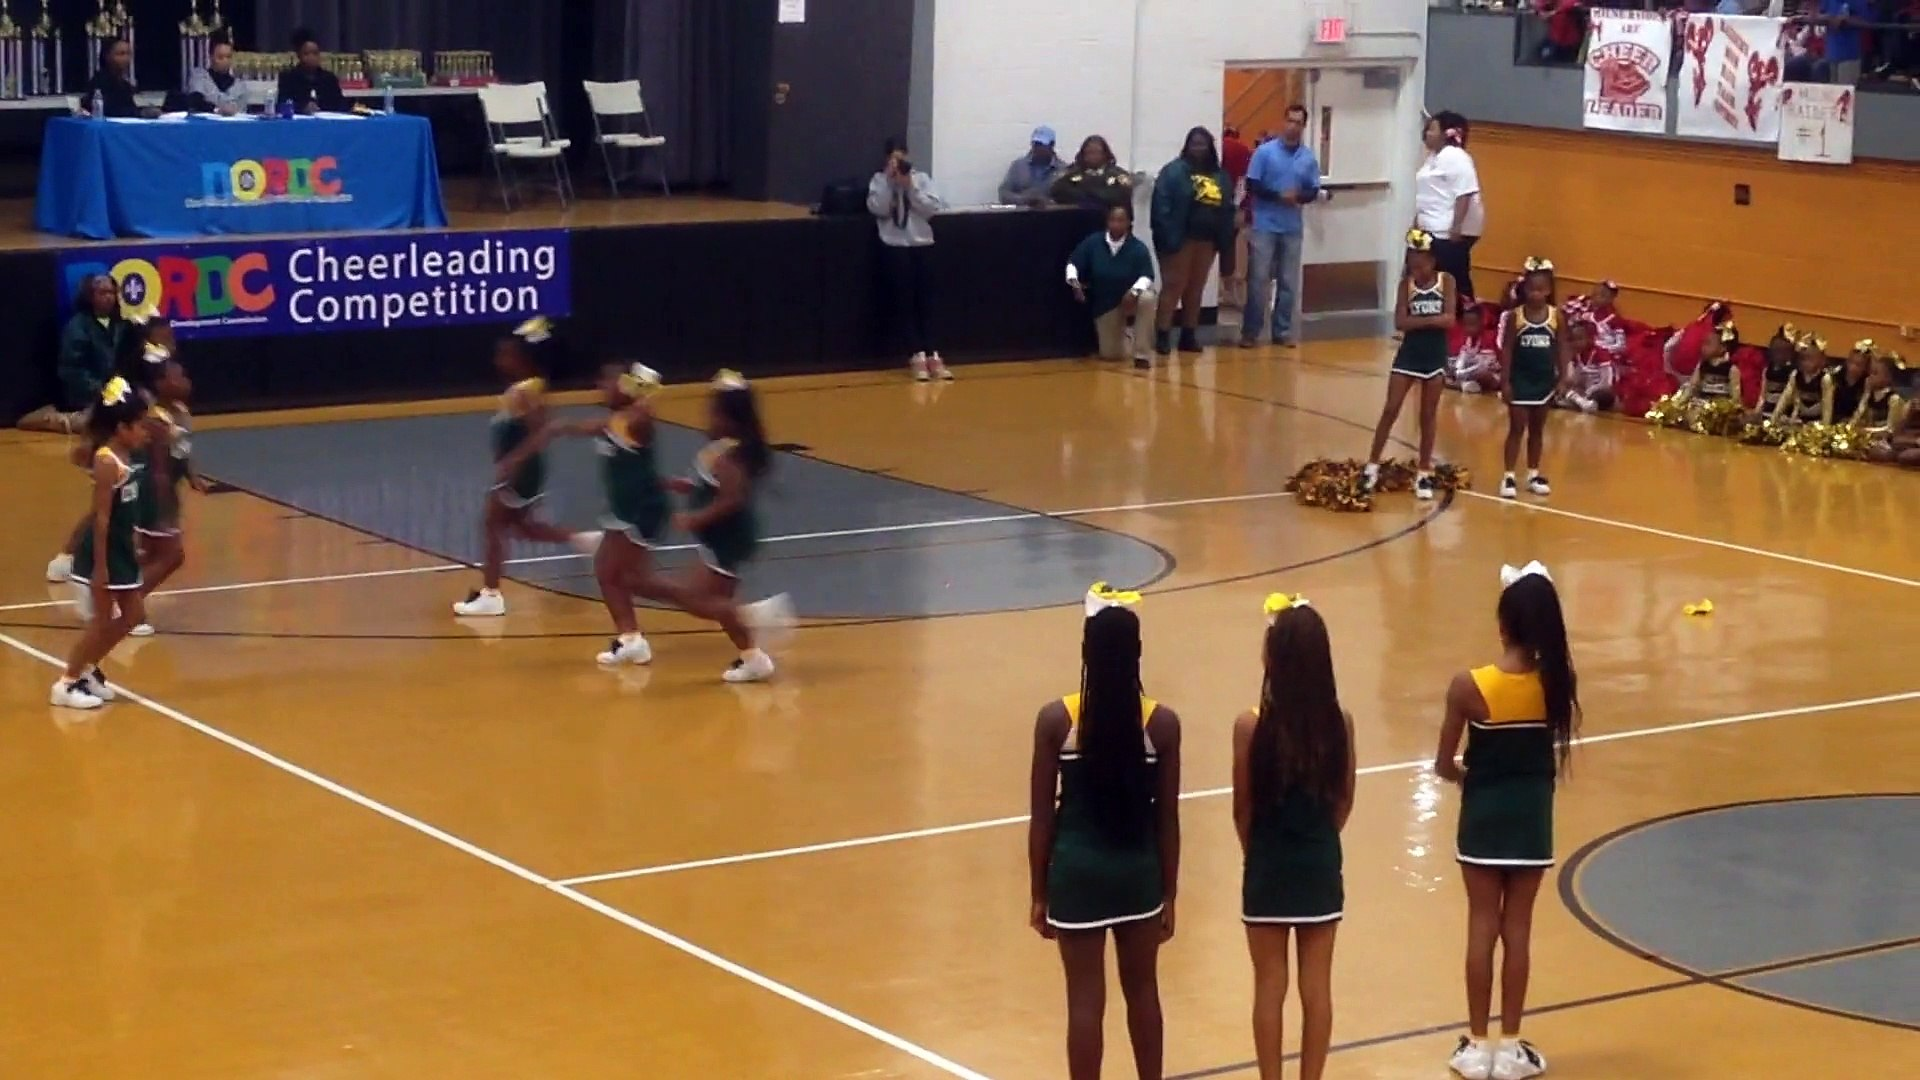 Cheerleading competition 6.1